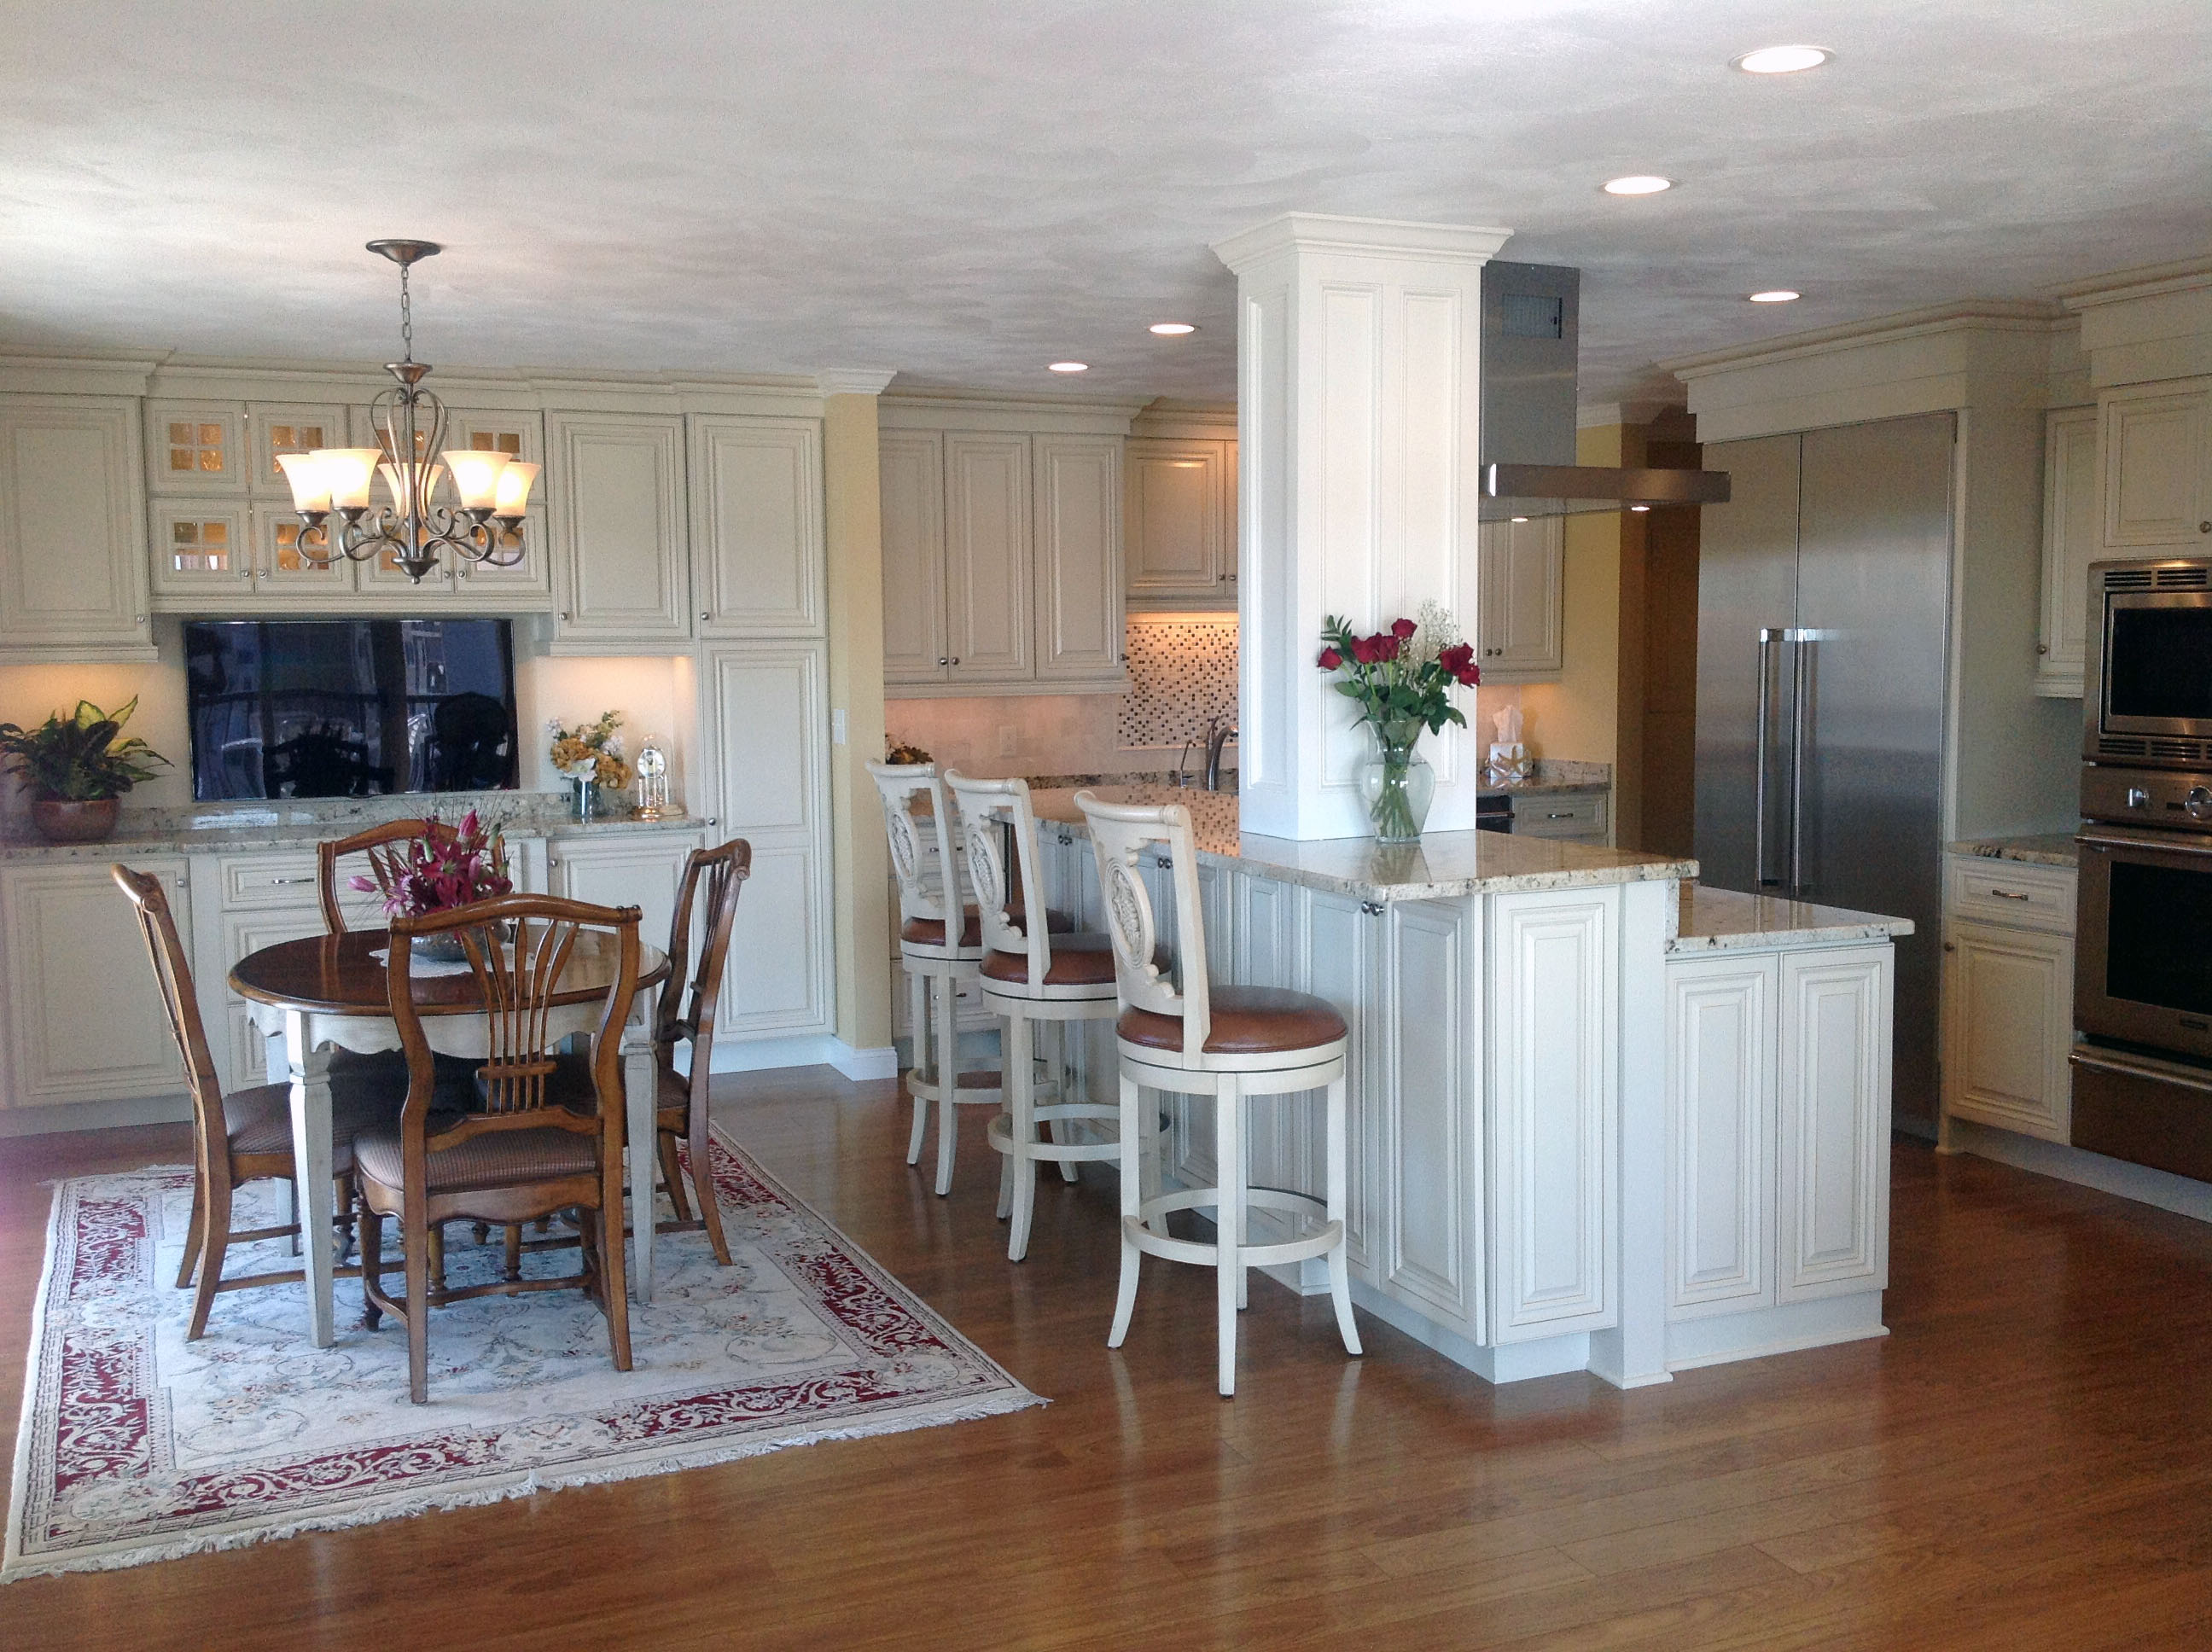 the best custom bath & kitchen cabinetry weymouth ma | discount